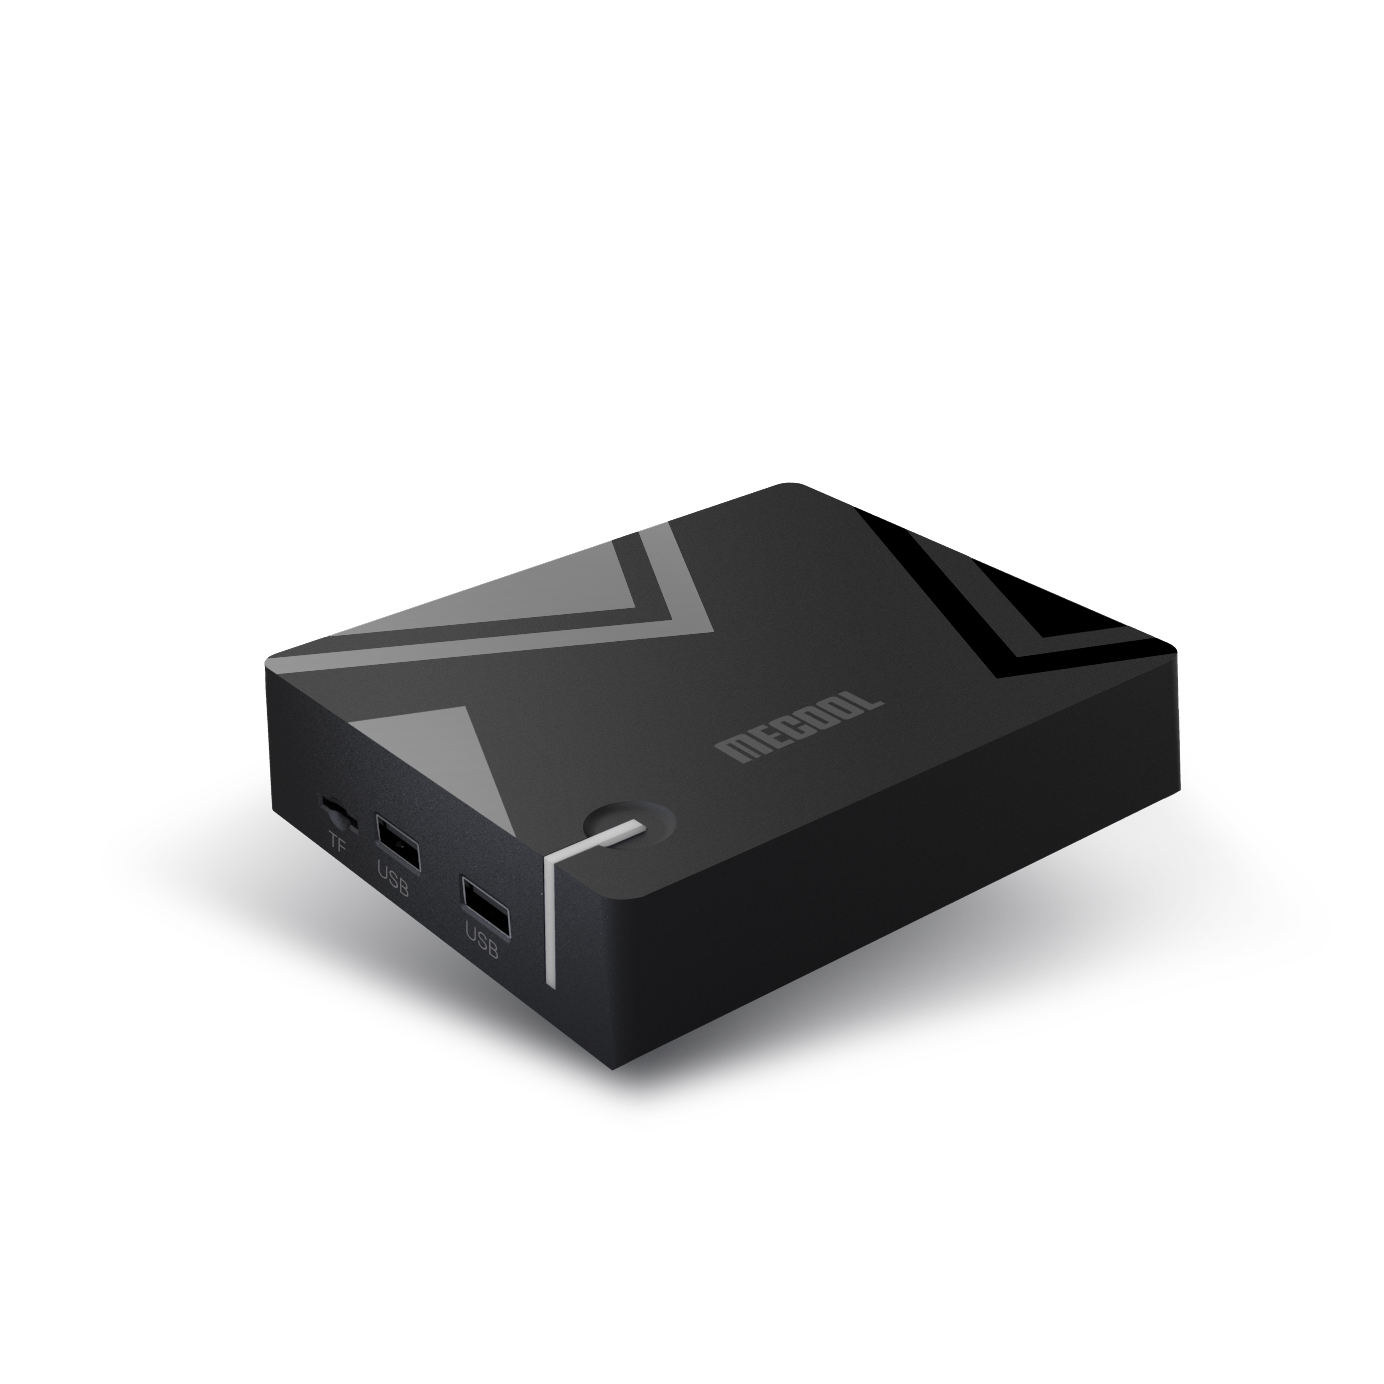 Commercio all'ingrosso Hybridtv K5 Android 9.0 Amlogic S905 <span class=keywords><strong>DVB</strong></span> S2 T2 C PVR <span class=keywords><strong>Internet</strong></span> TV Box 4K TV Satellitare Digitale ricevitore Decoder